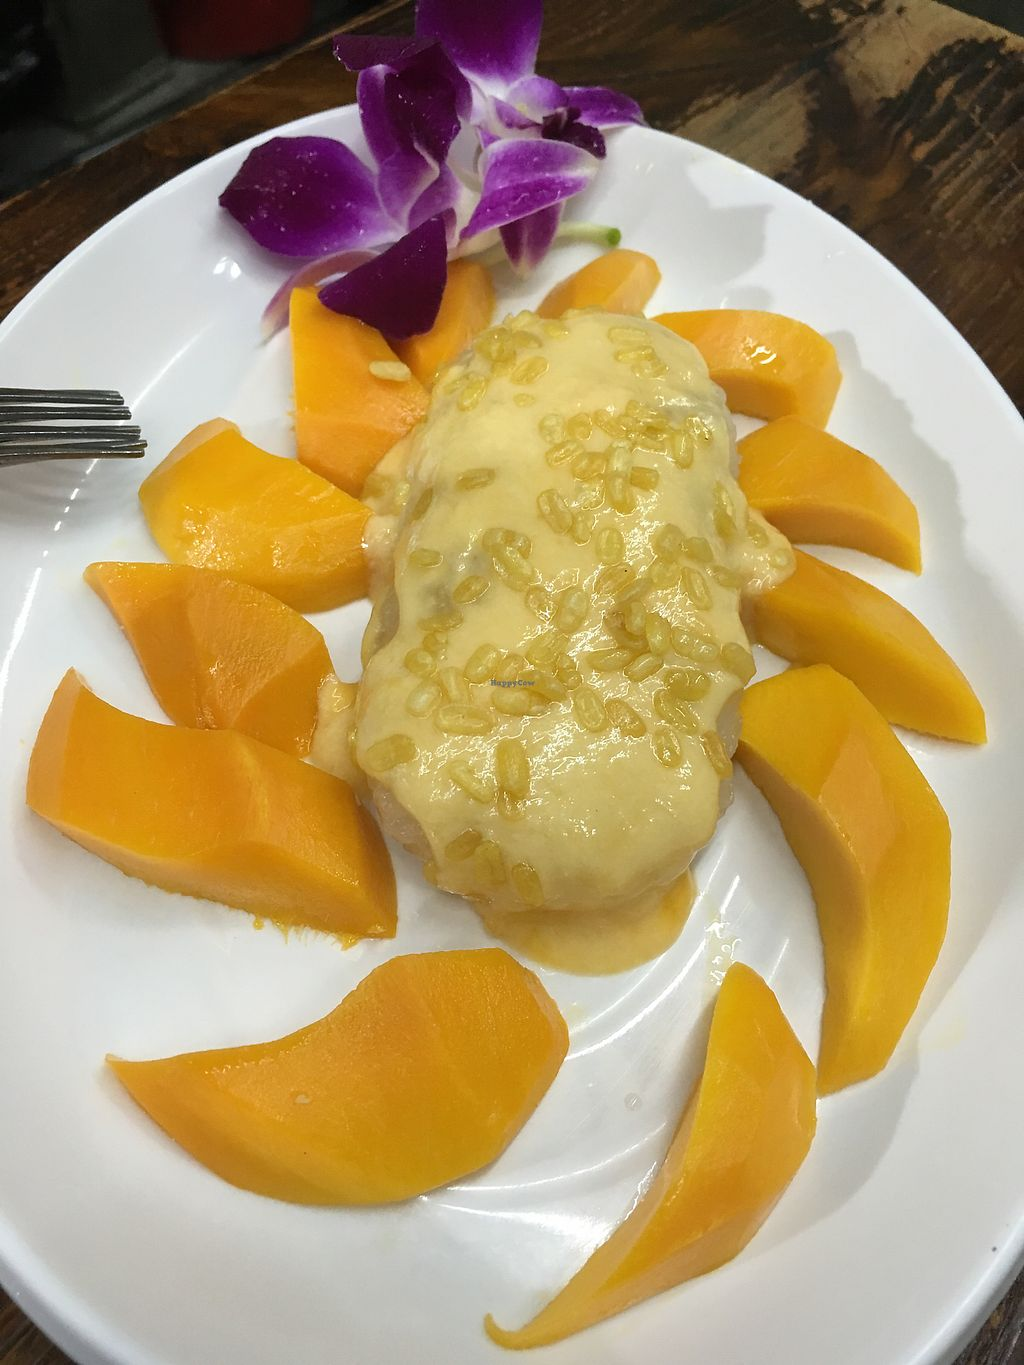 "Photo of Thai Vegetarian Food  by <a href=""/members/profile/Veg4Jay"">Veg4Jay</a> <br/>Mango Sticky Rice <br/> April 15, 2018  - <a href='/contact/abuse/image/52173/386264'>Report</a>"